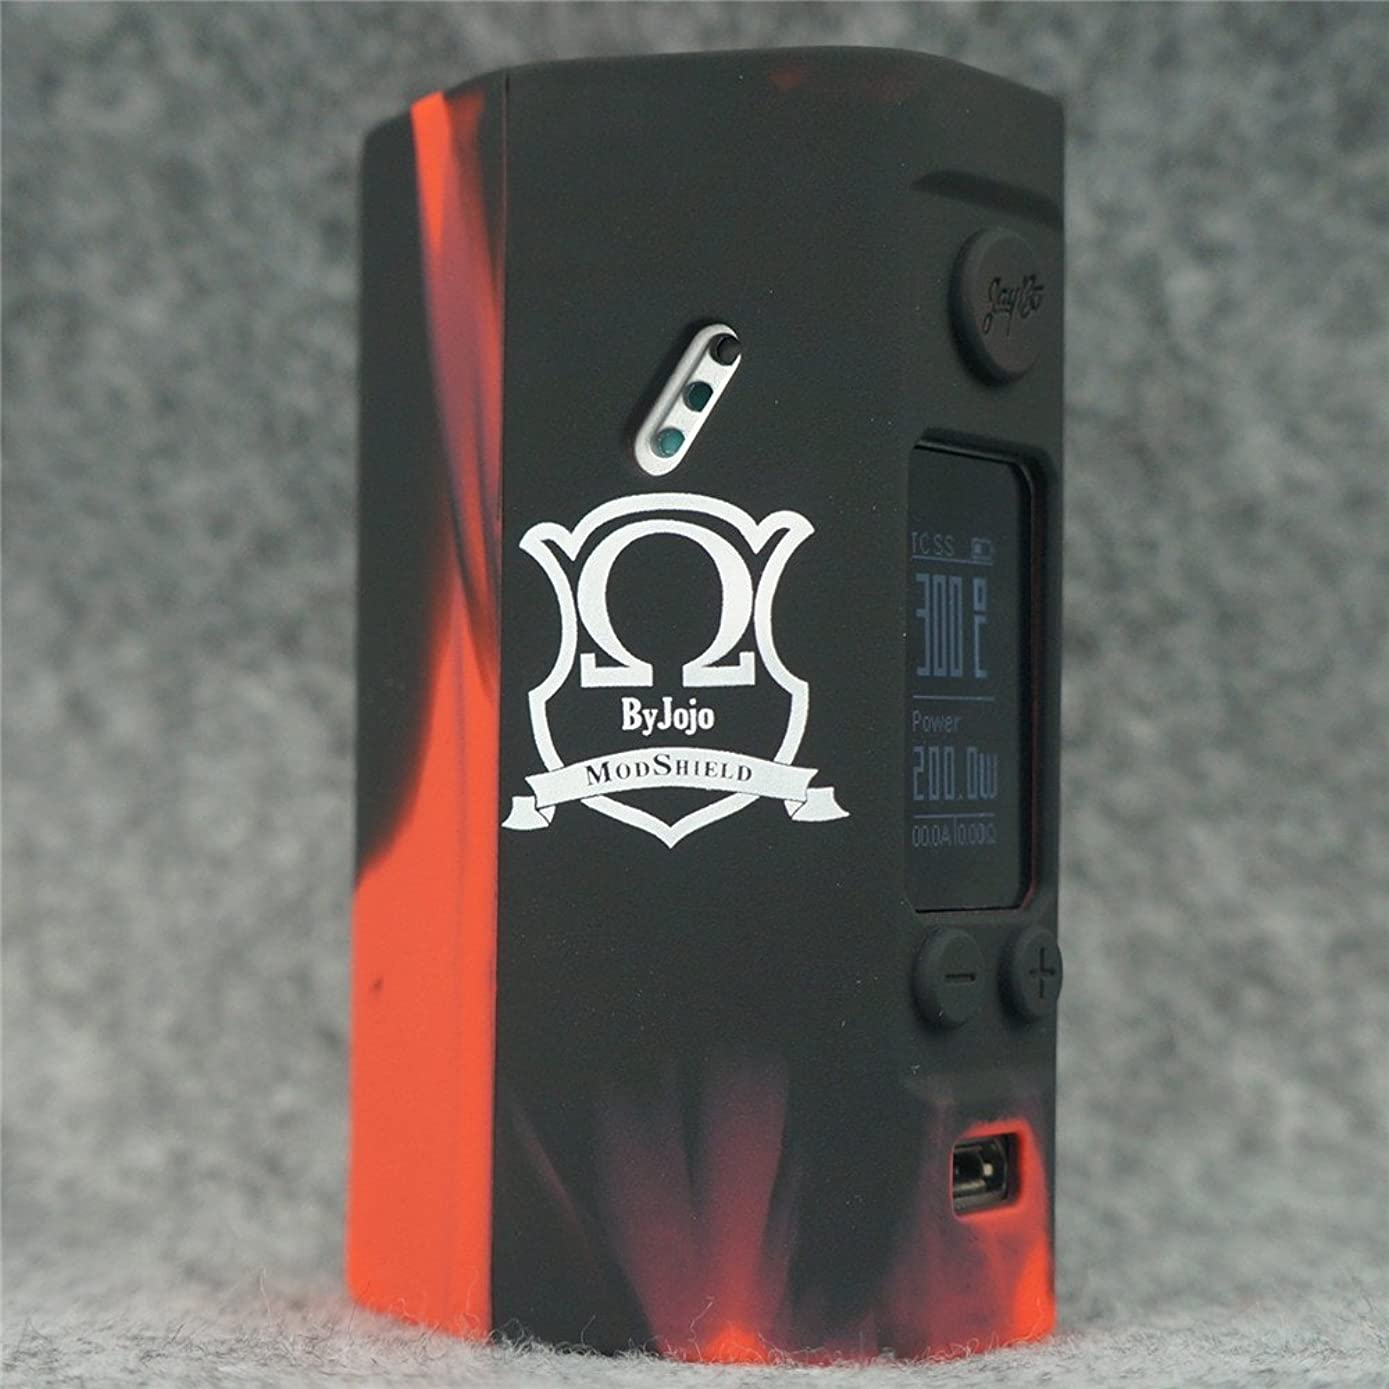 Silicone Case for Wismec Reuleaux RX200S MOD SHIELD ByJojo Skin RX 200 S Sleeve Cover Wrap (Red/Black)